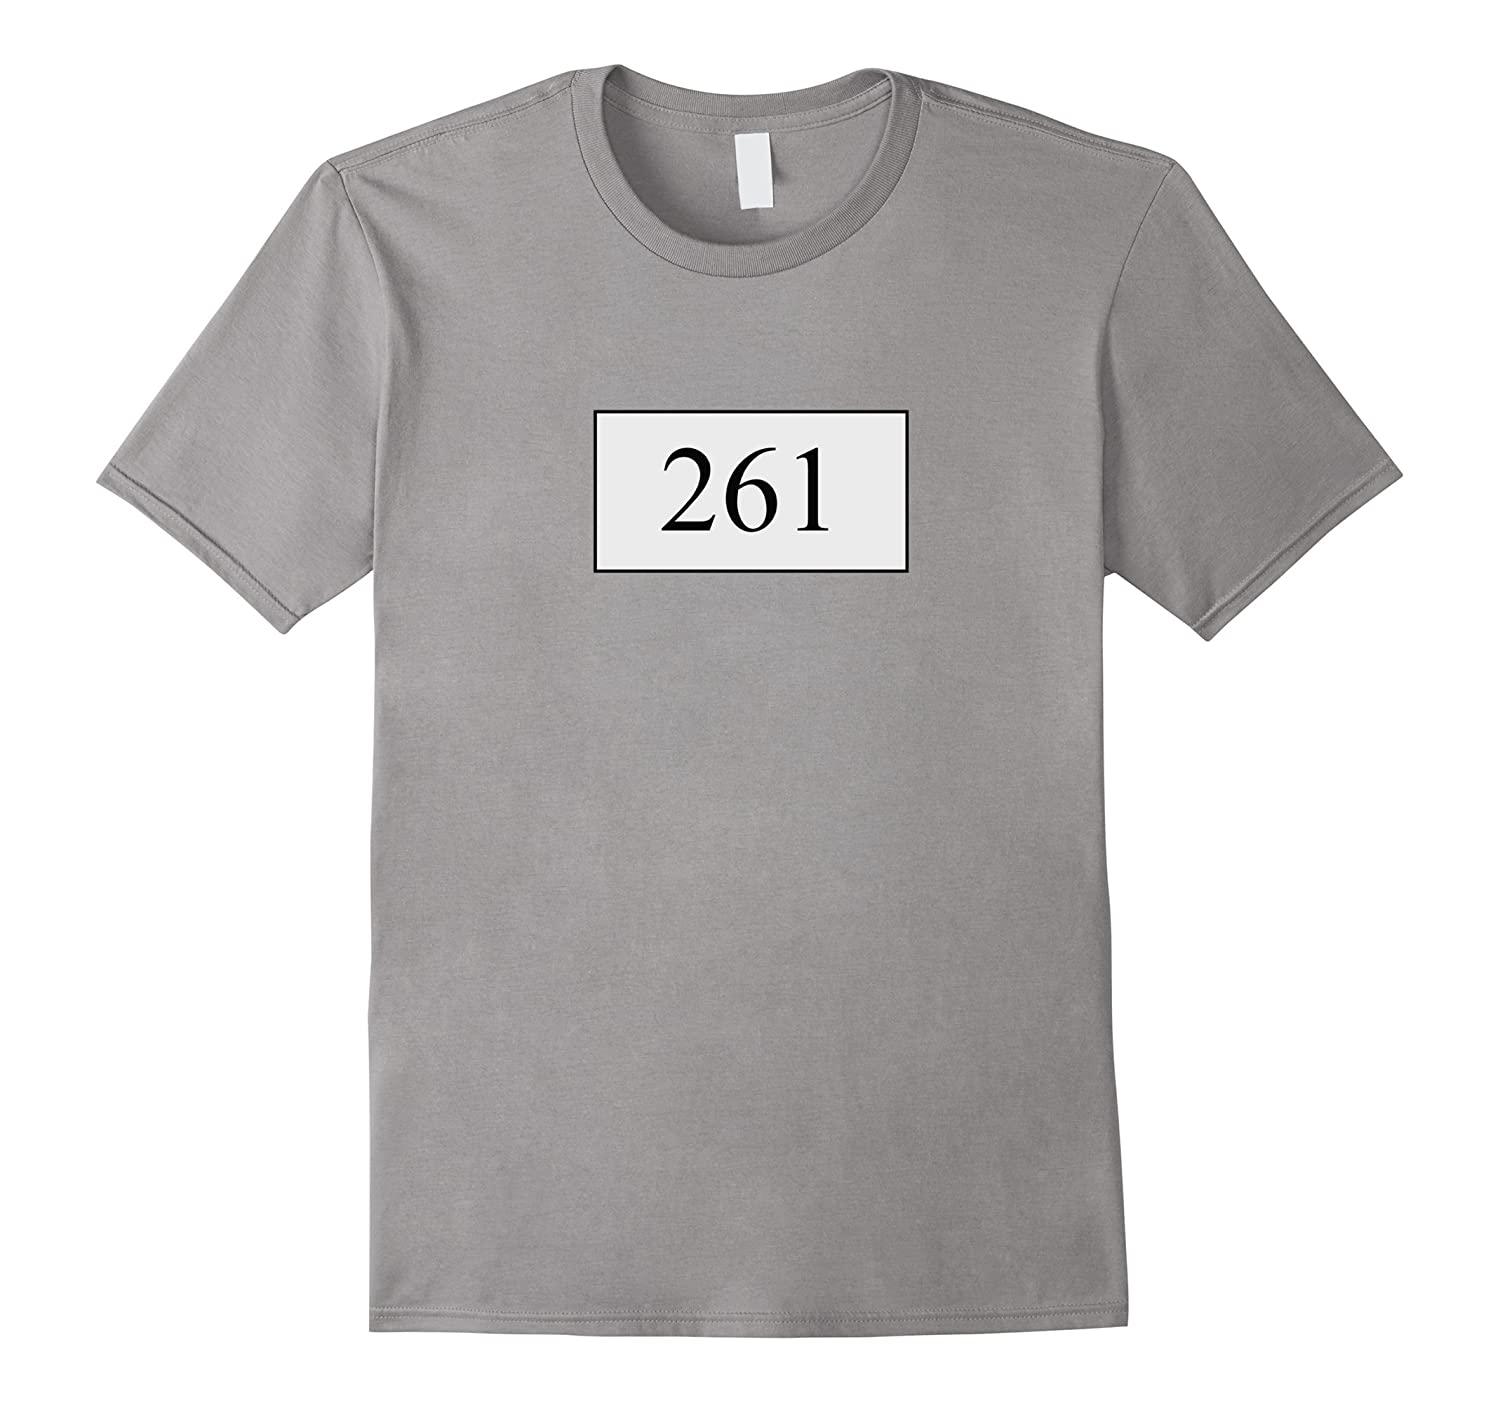 261 Marathon Number T-Shirt running gifts-TD